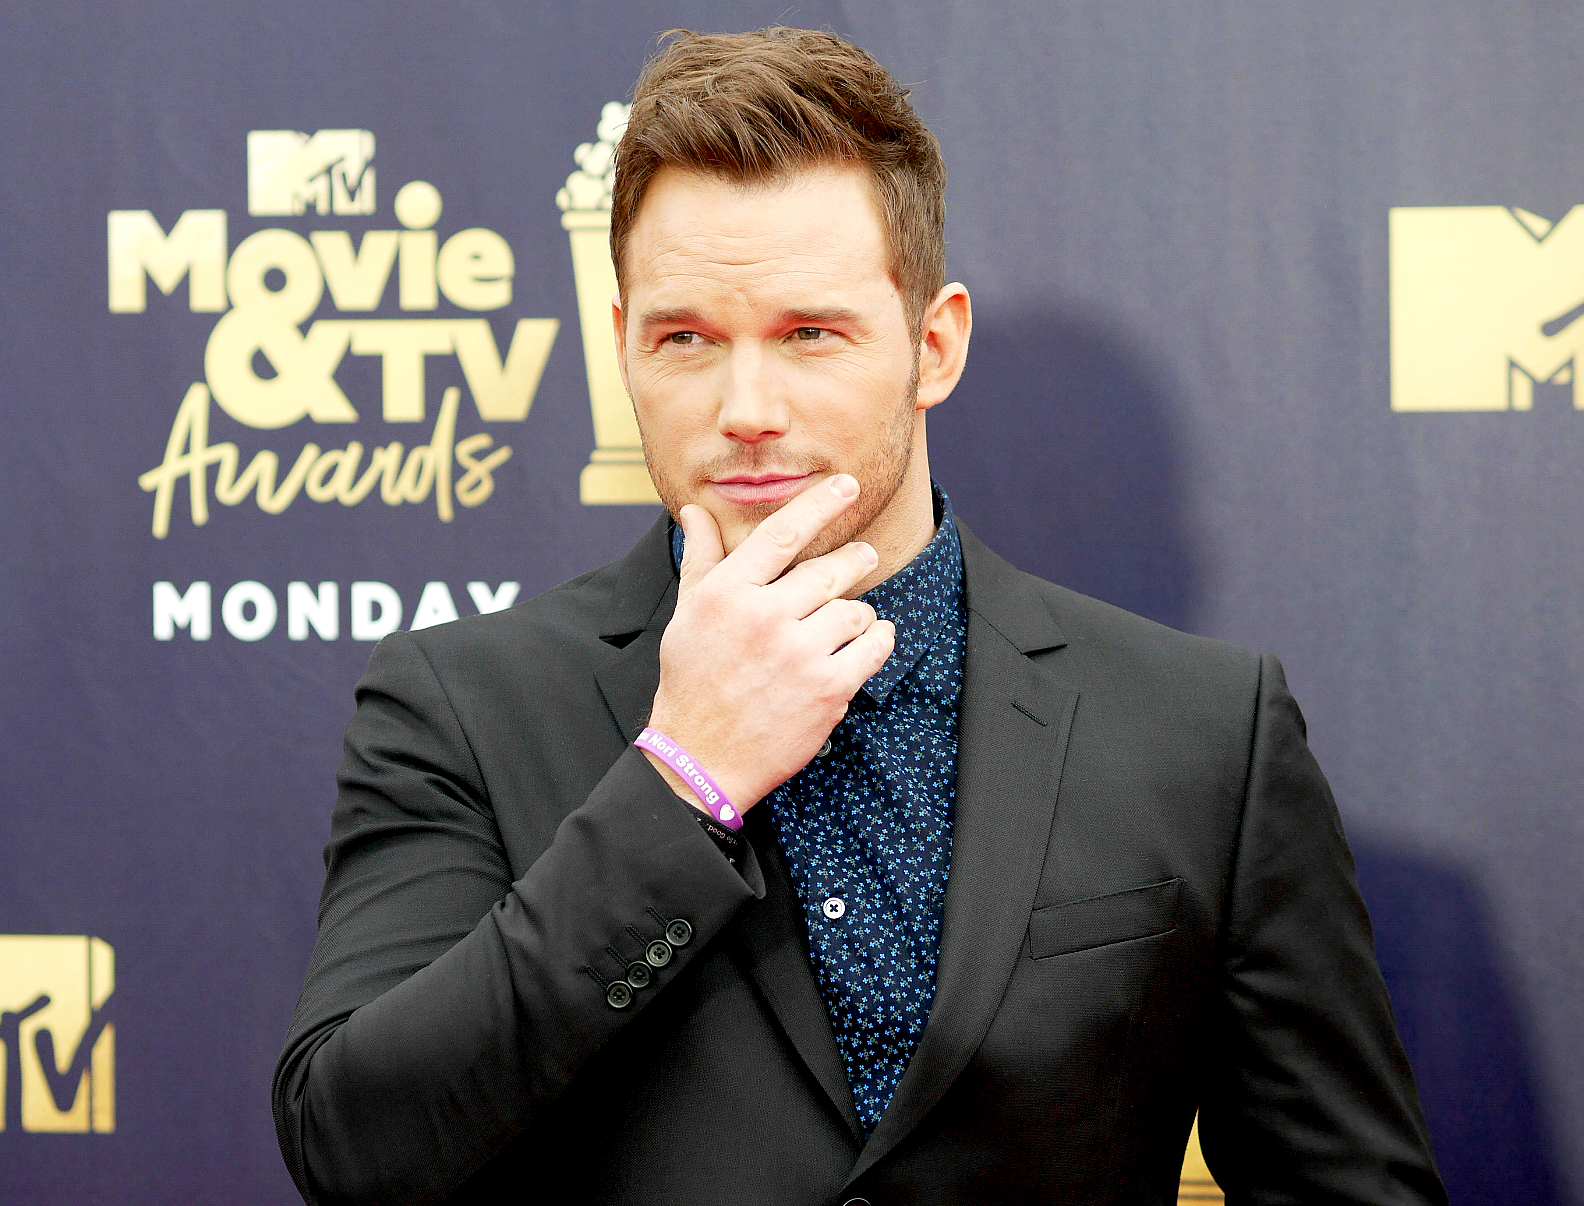 Watch Chris Pratt's MTV speech on God's love, learning to pray